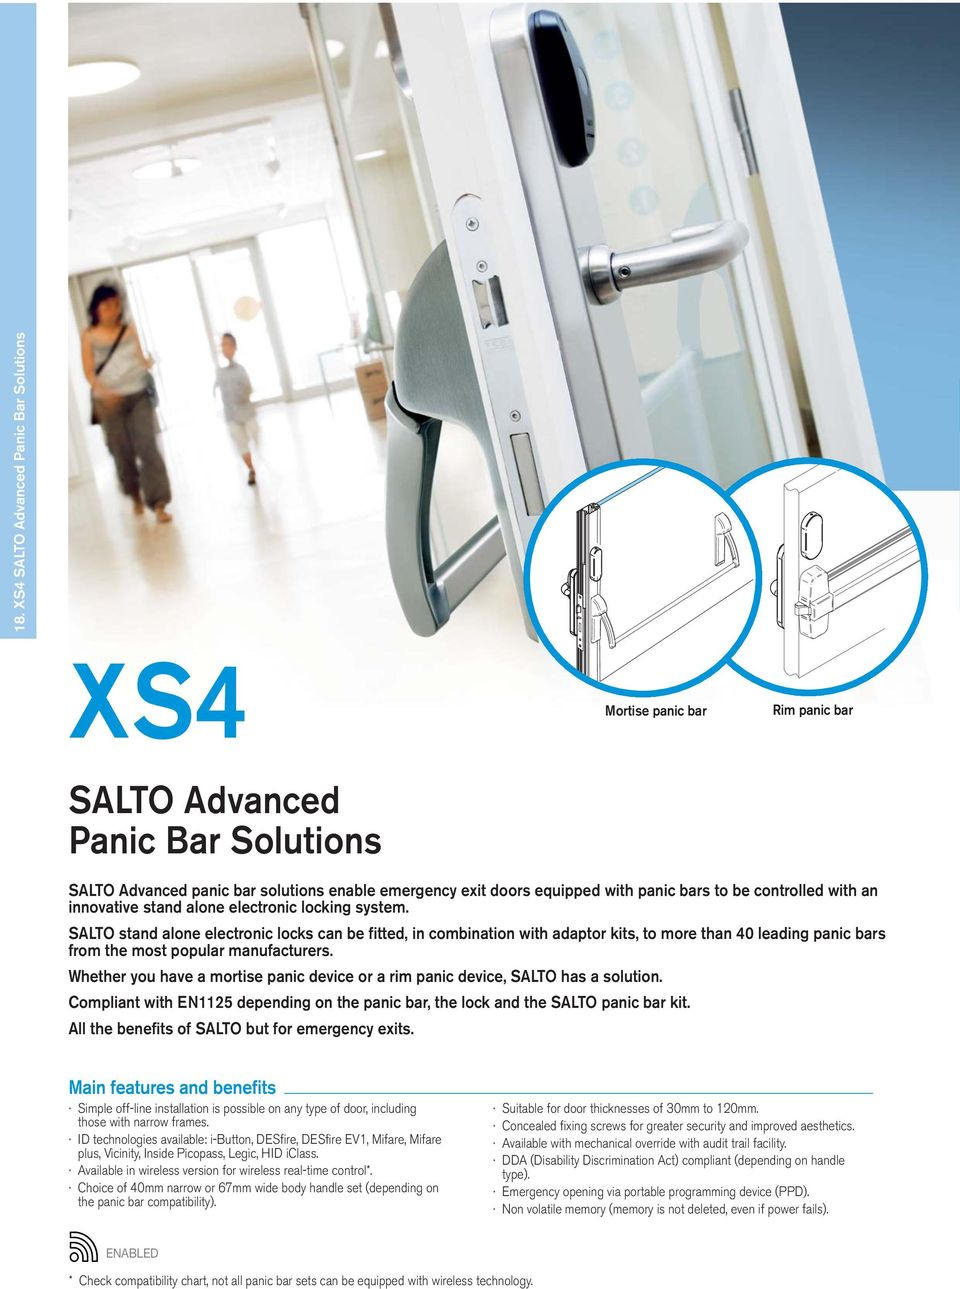 SALTO stand alone electronic locks can be fitted, in combination with adaptor kits, to more than 40 leading panic bars from the most popular manufacturers.